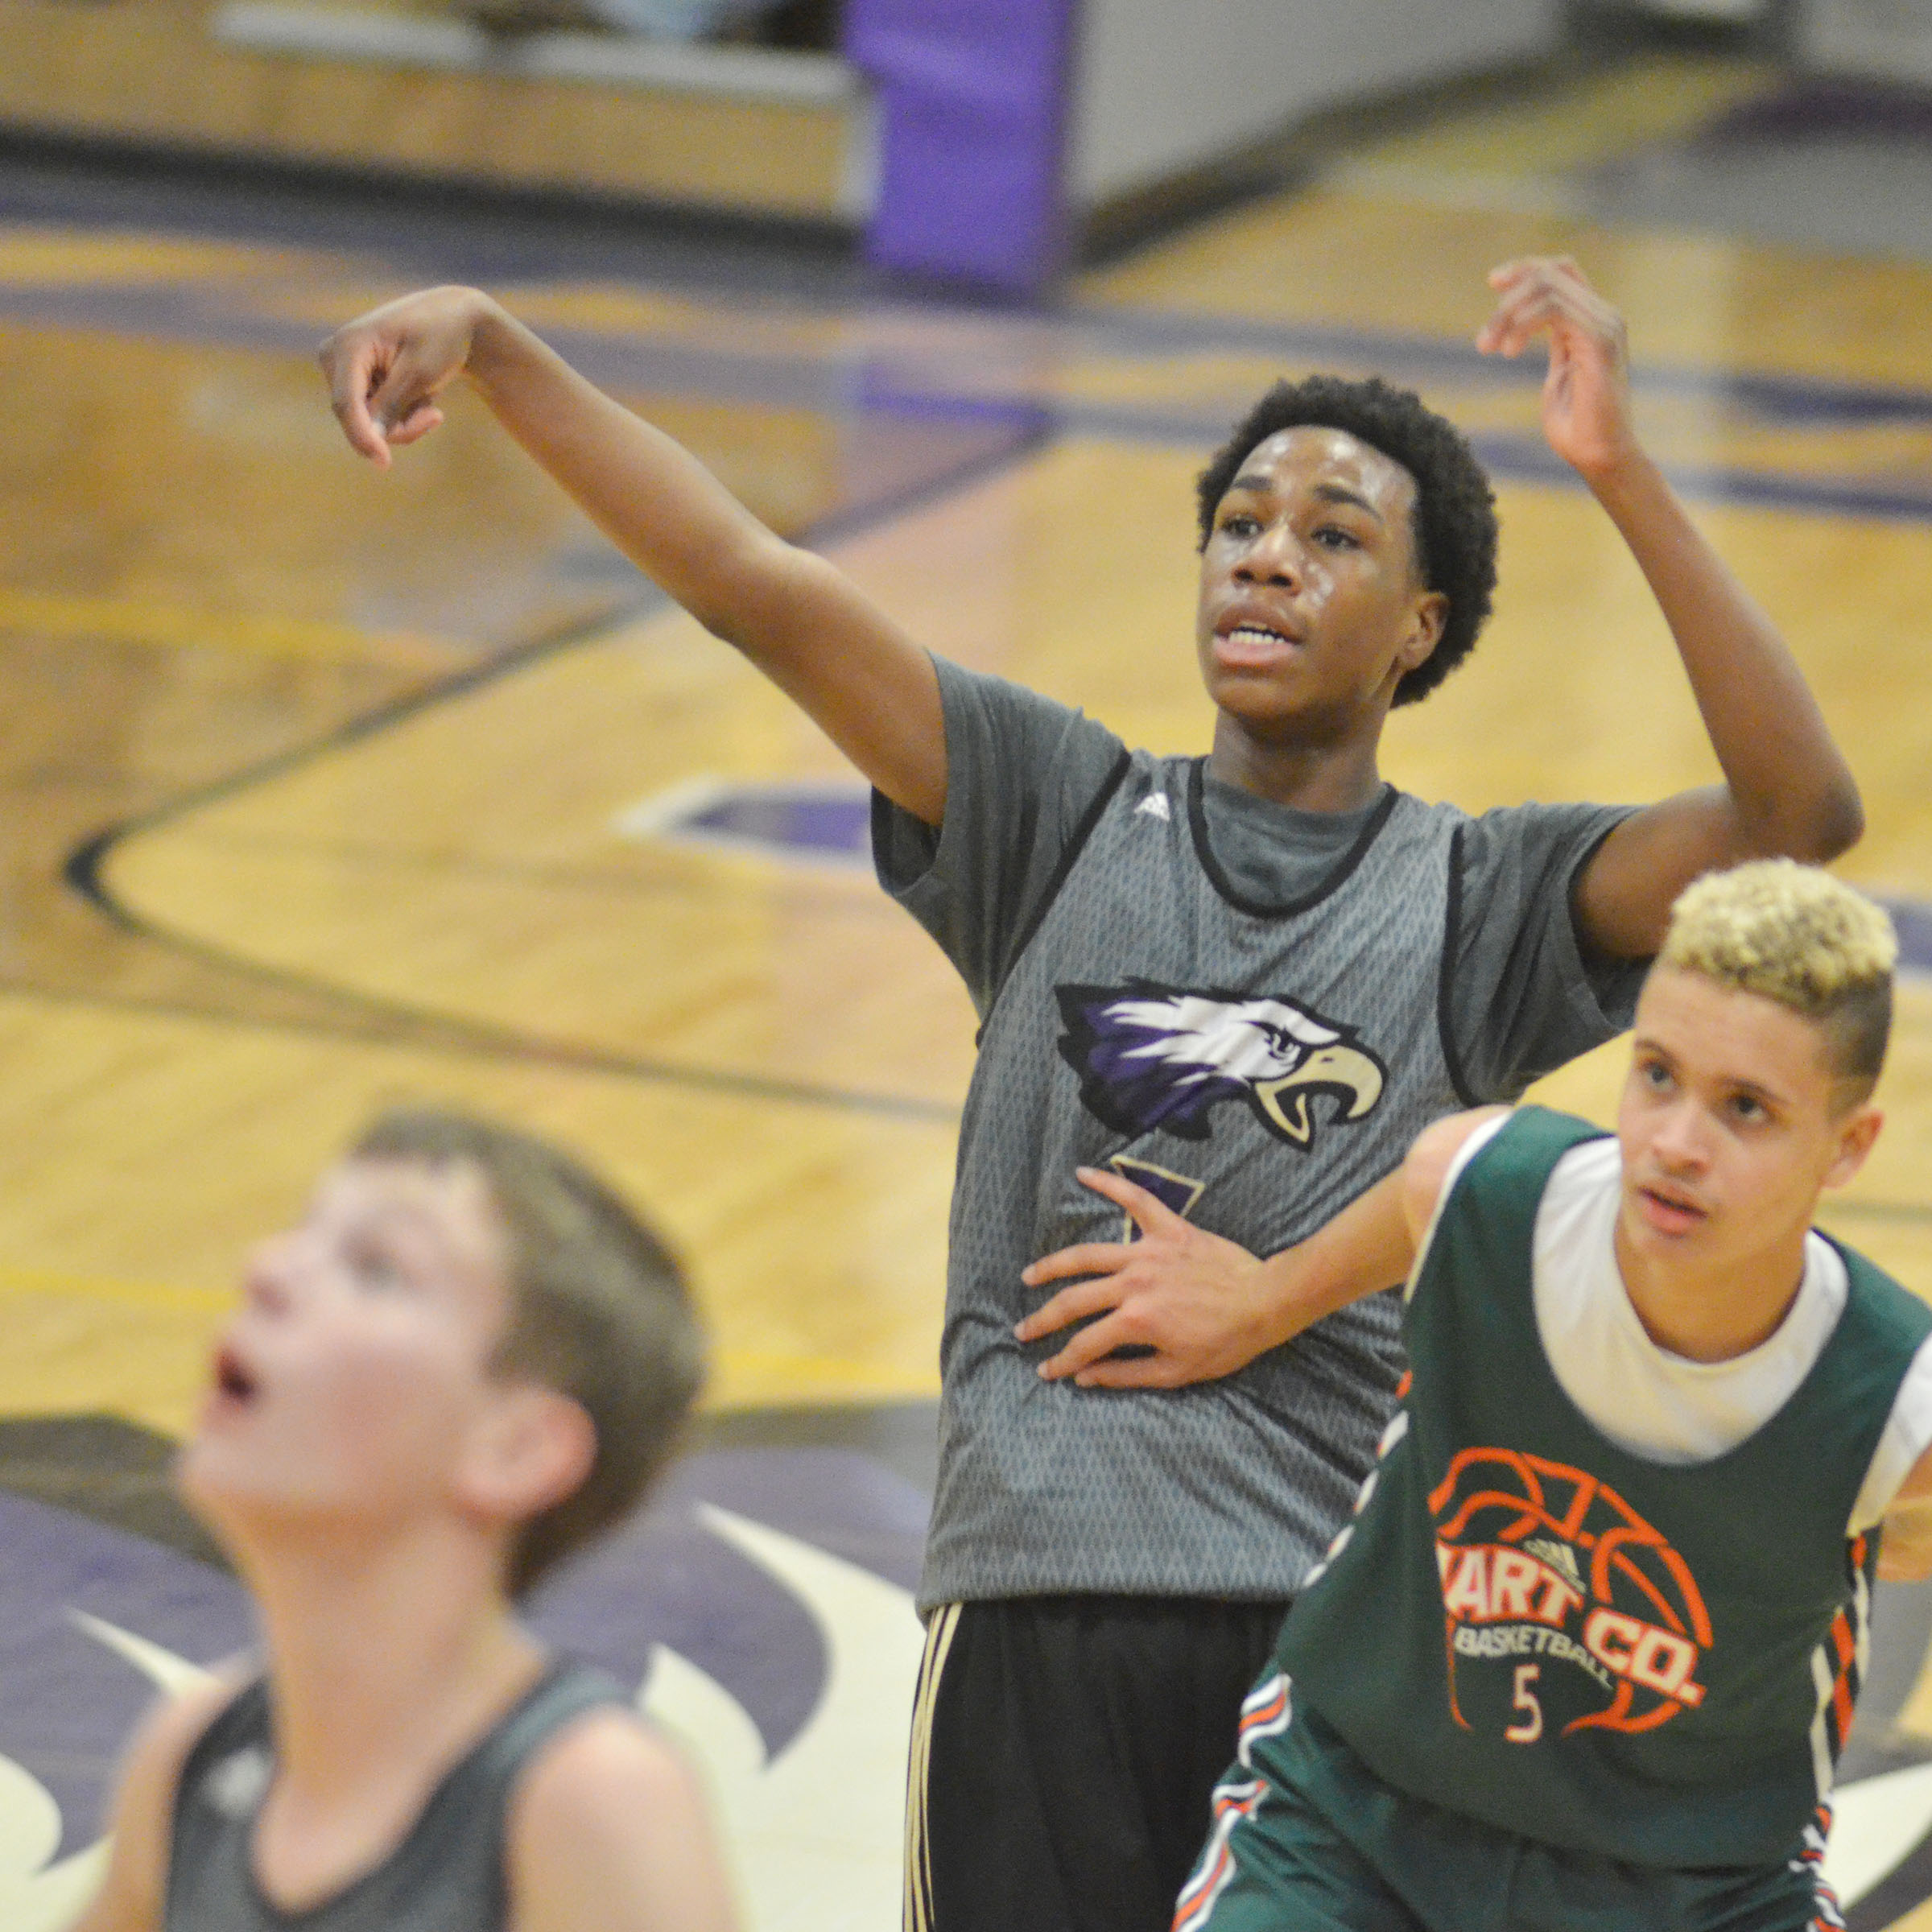 CHS freshman Malachi Corley shoots the ball.